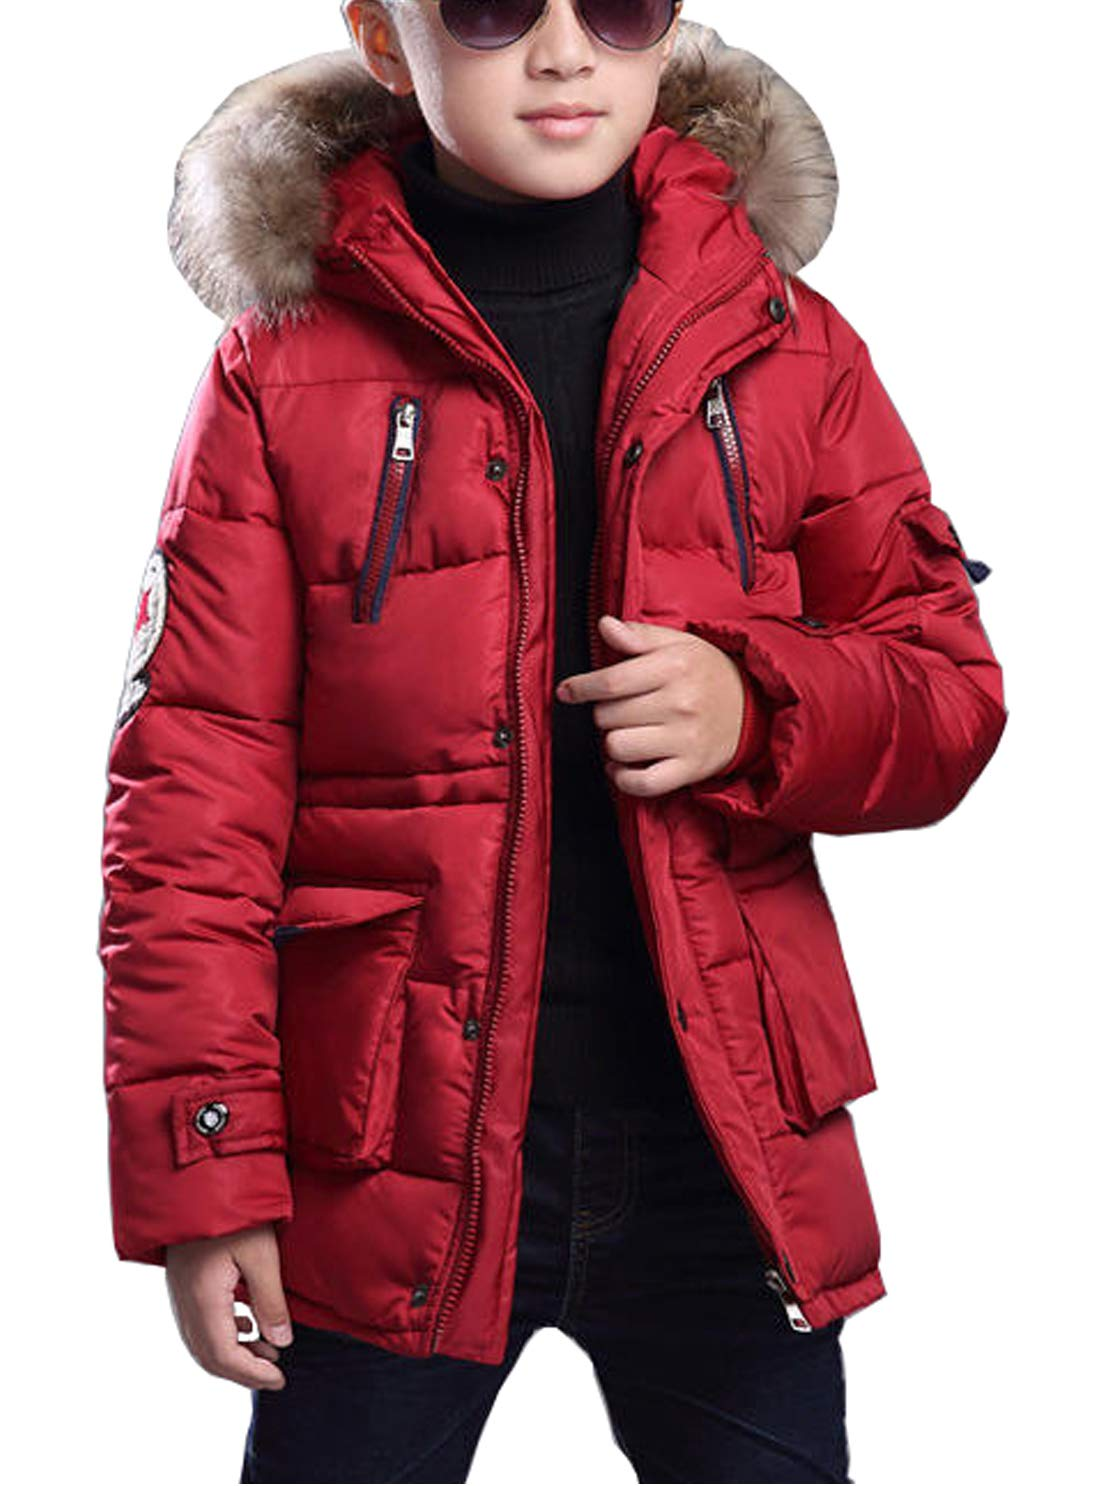 FARVALUE Boy Winter Coat Warm Quilted Puffer Parka Jacket with Fur Hood for Big Boys Red Size 12 by FARVALUE